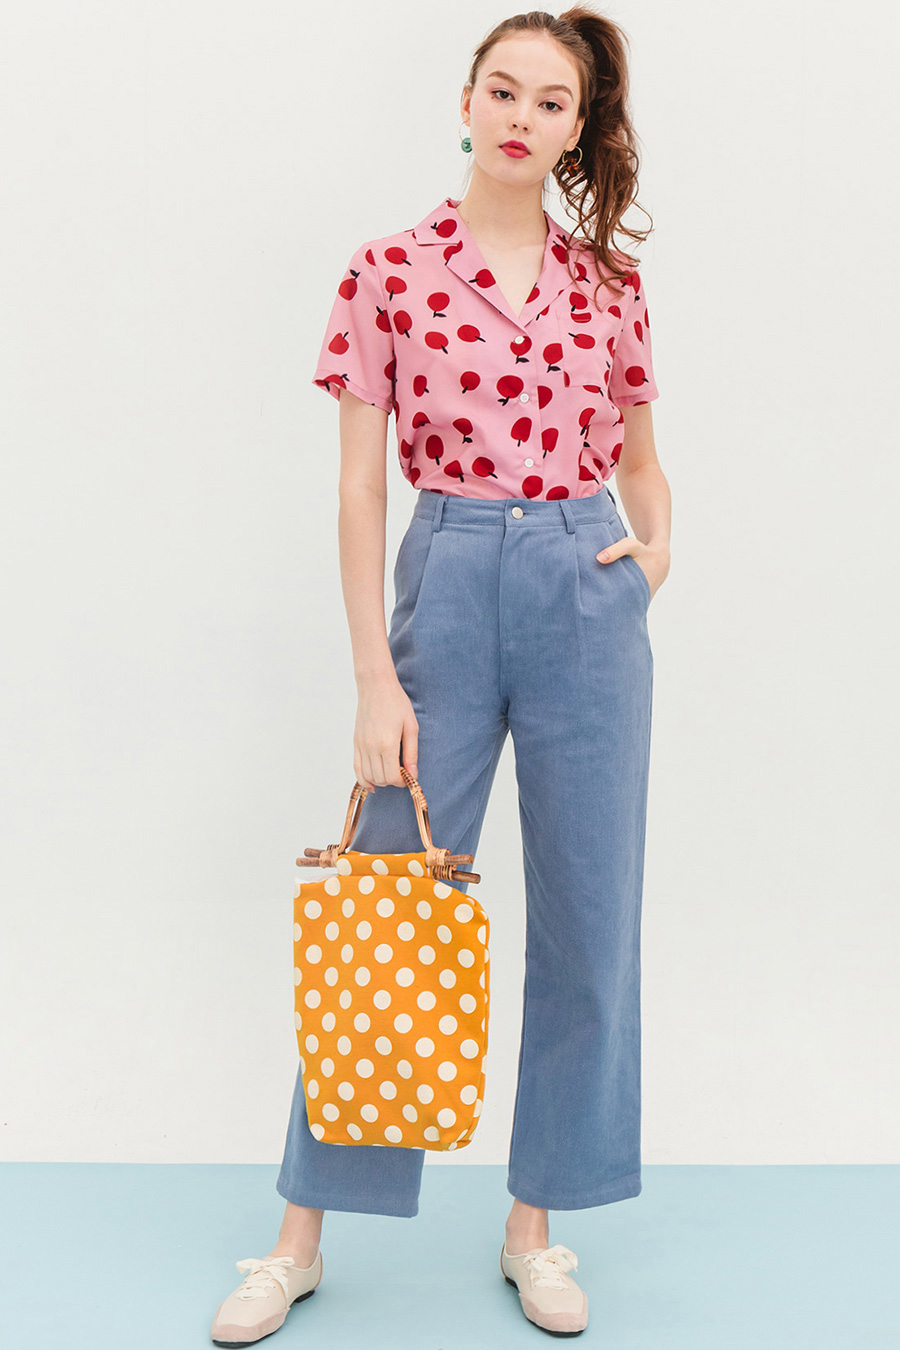 JILLY TOP - TANGERINE [BY MODPARADE]